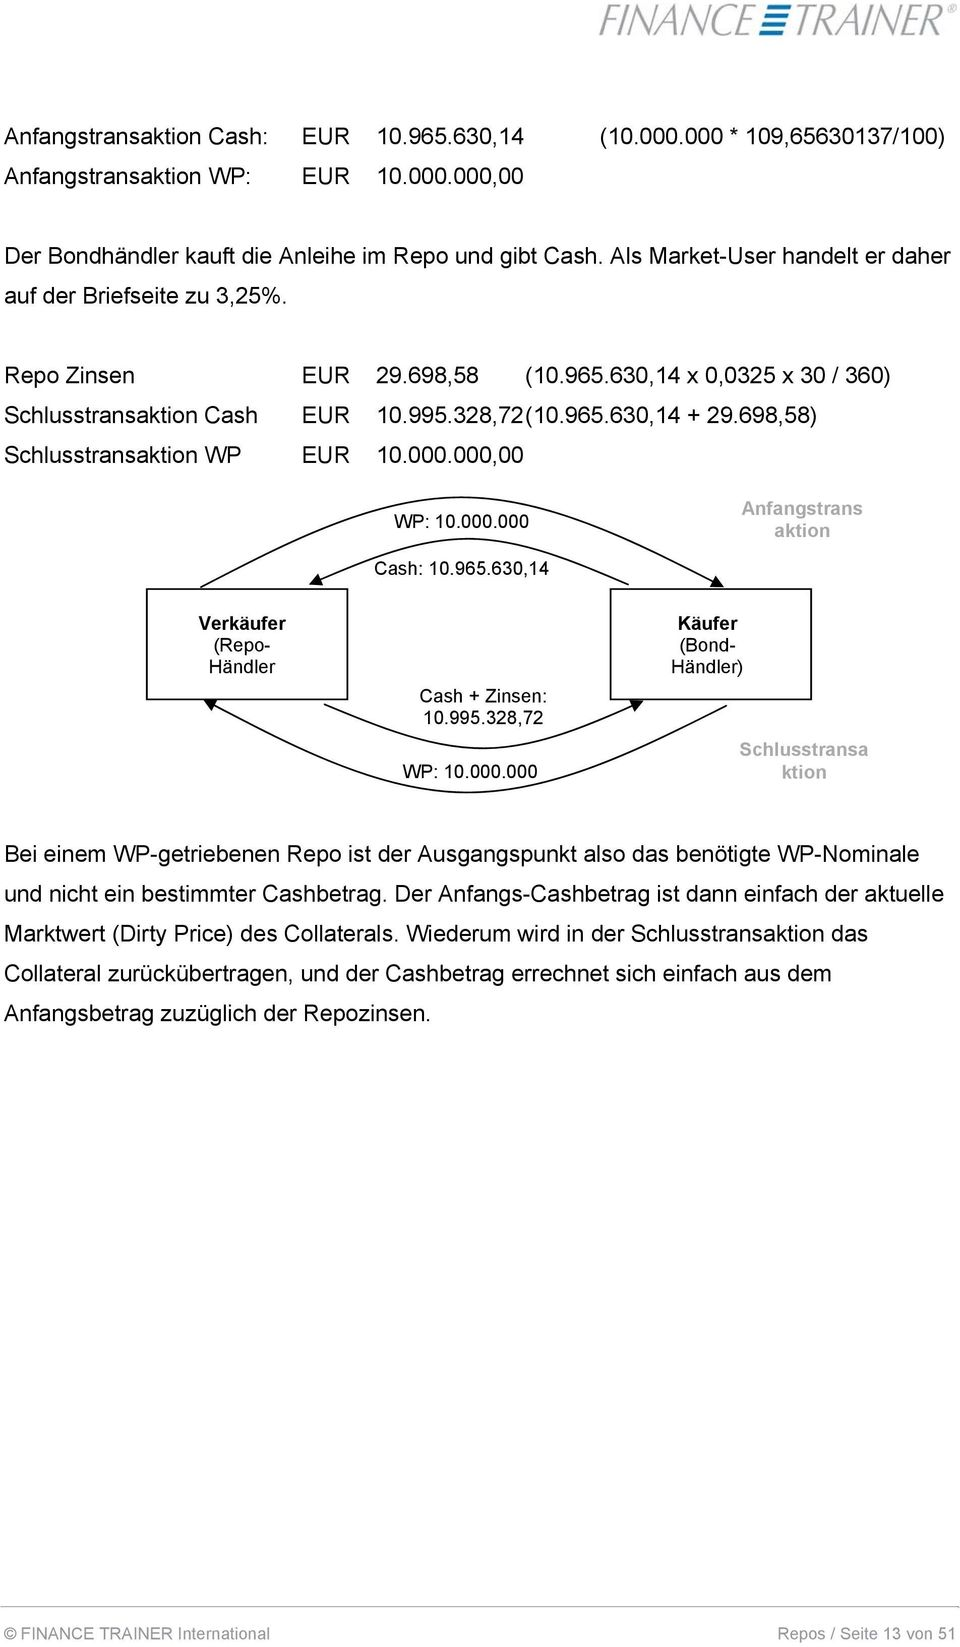 698,58) Schlusstransaktion WP EUR 10.000.